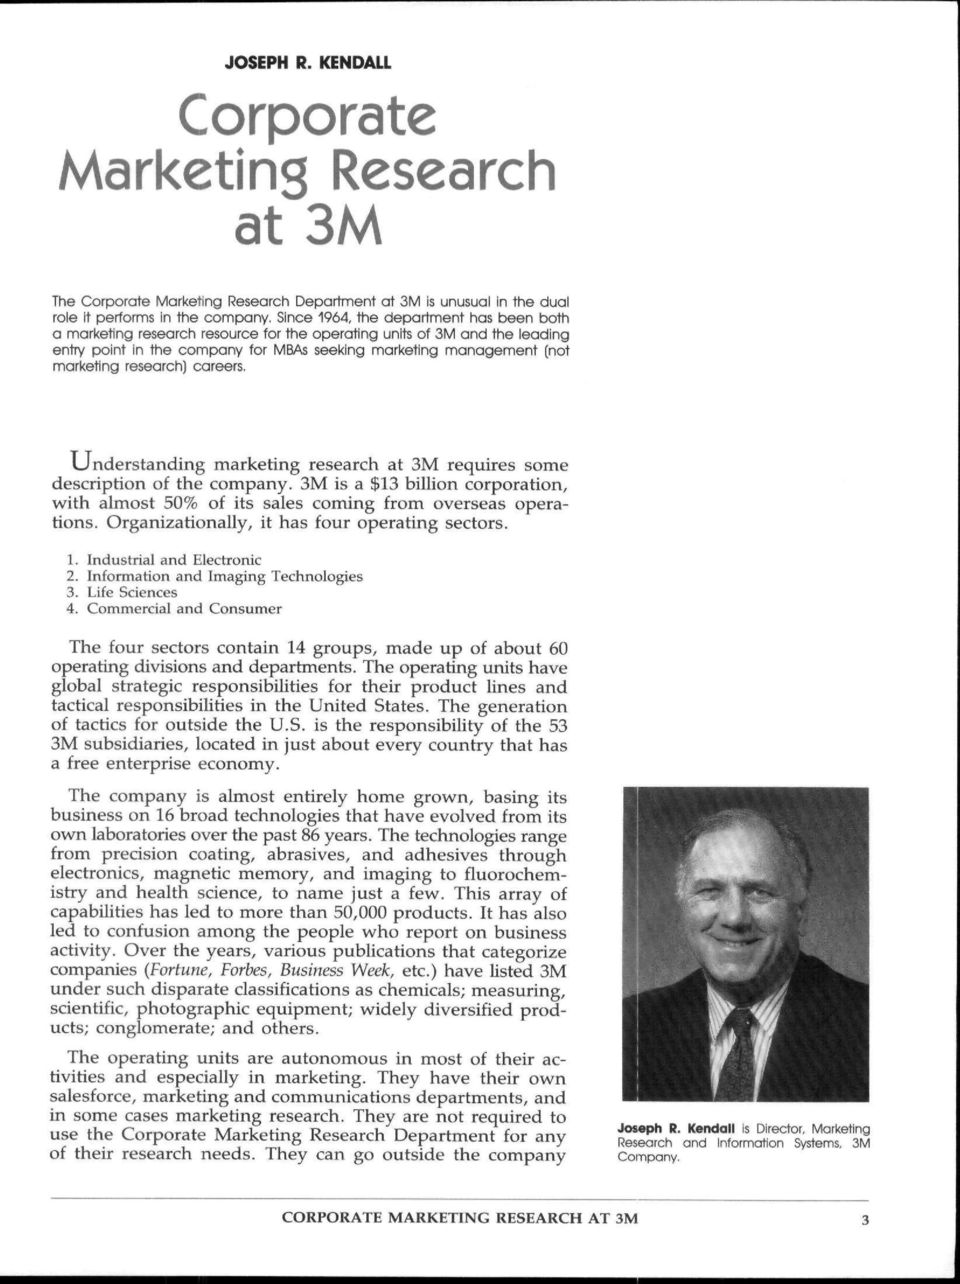 research] careers. Understanding marketing research at 3M requires some description of the company. 3M is a $13 billion corporation, with almost 50% of its sales coming from overseas operations.